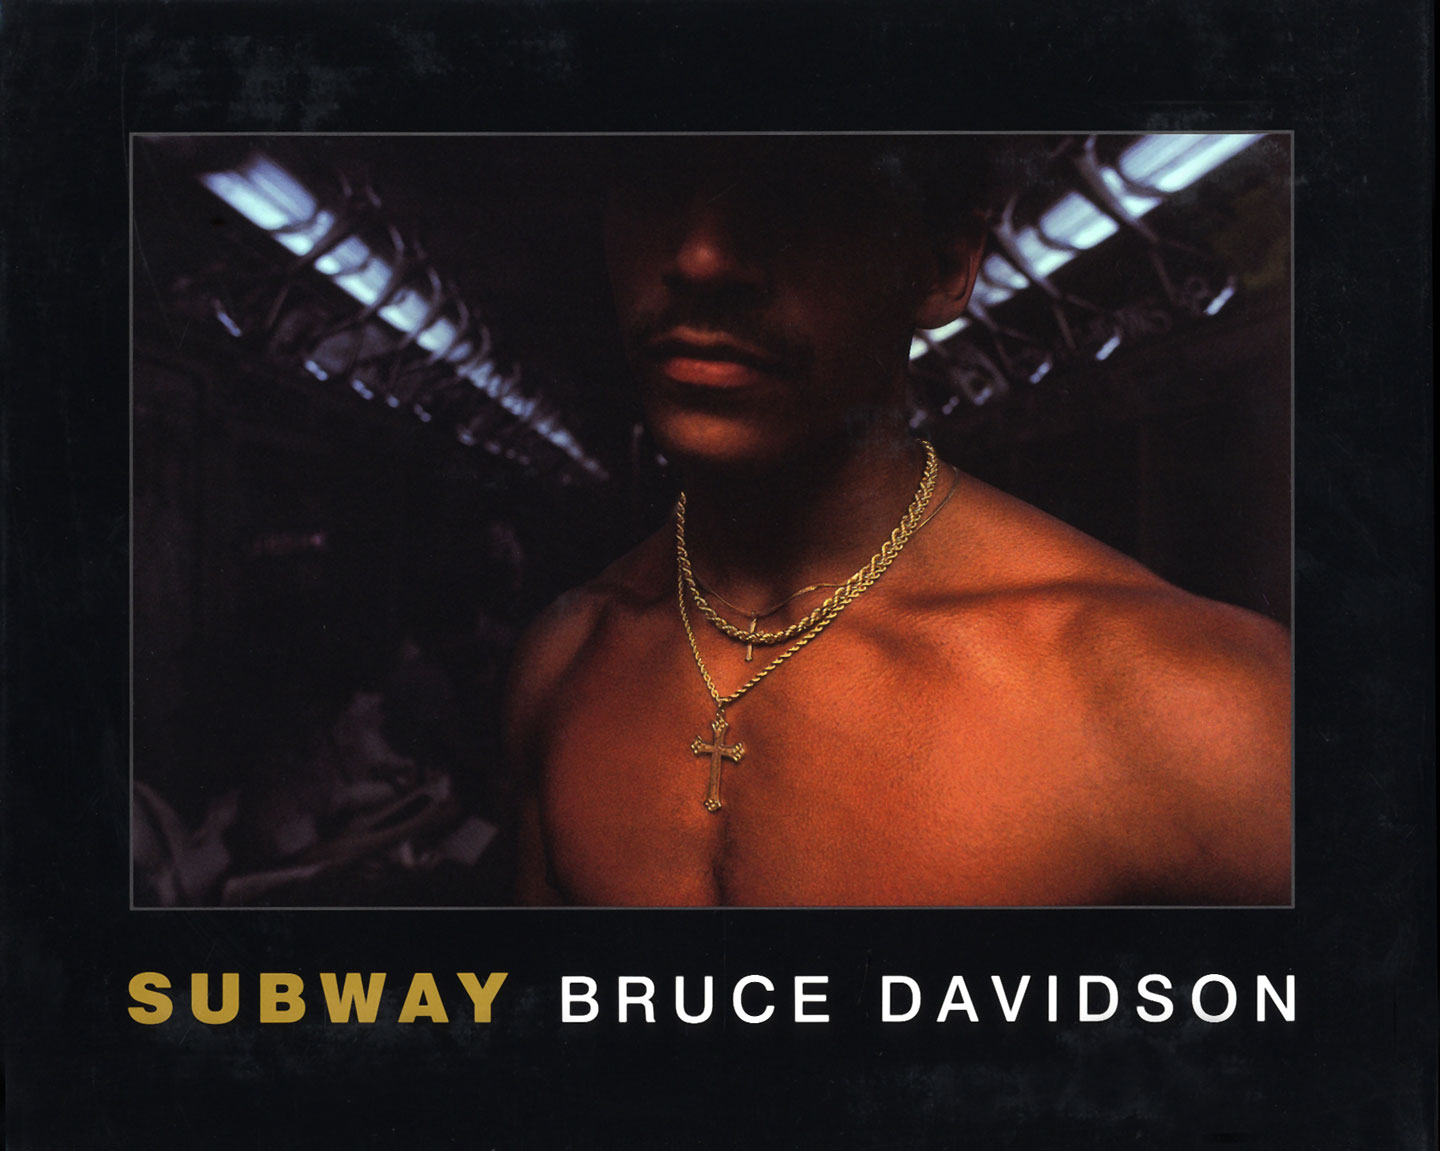 Bruce Davidson: Subway (St. Ann's Press Expanded Edition)